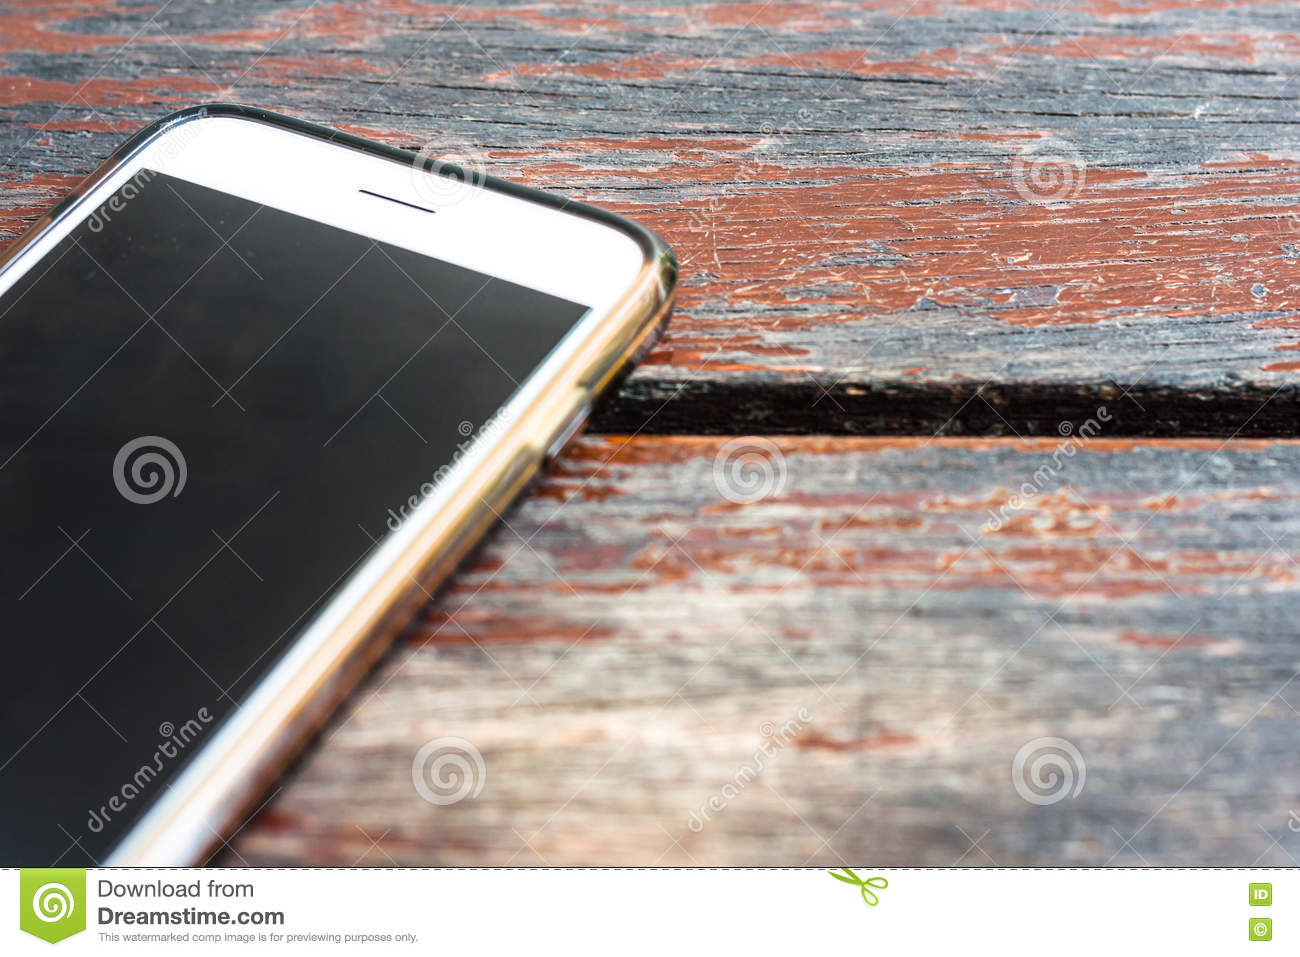 Waiting For Someone To Call Stock Photo - Image: 74990086